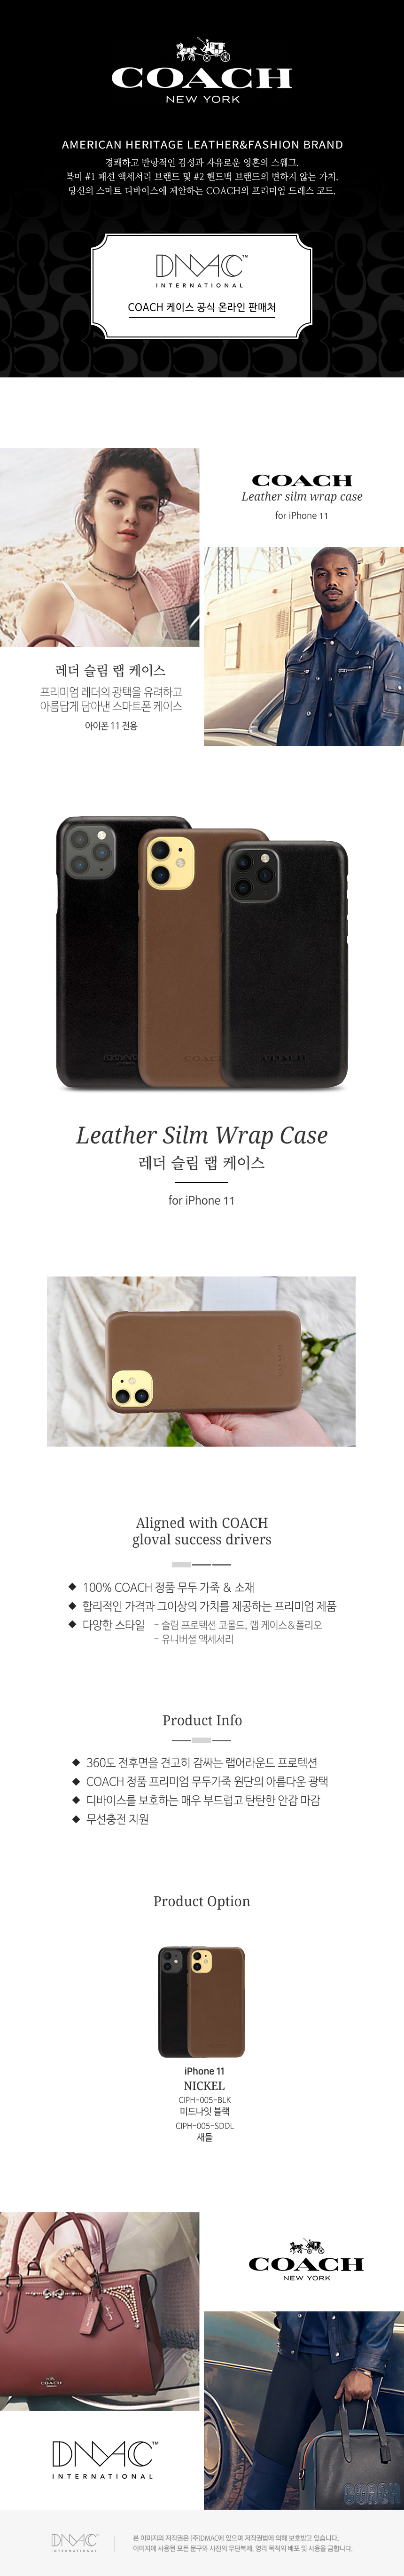 Leather-Slim-Wrap-Case_iPhone11